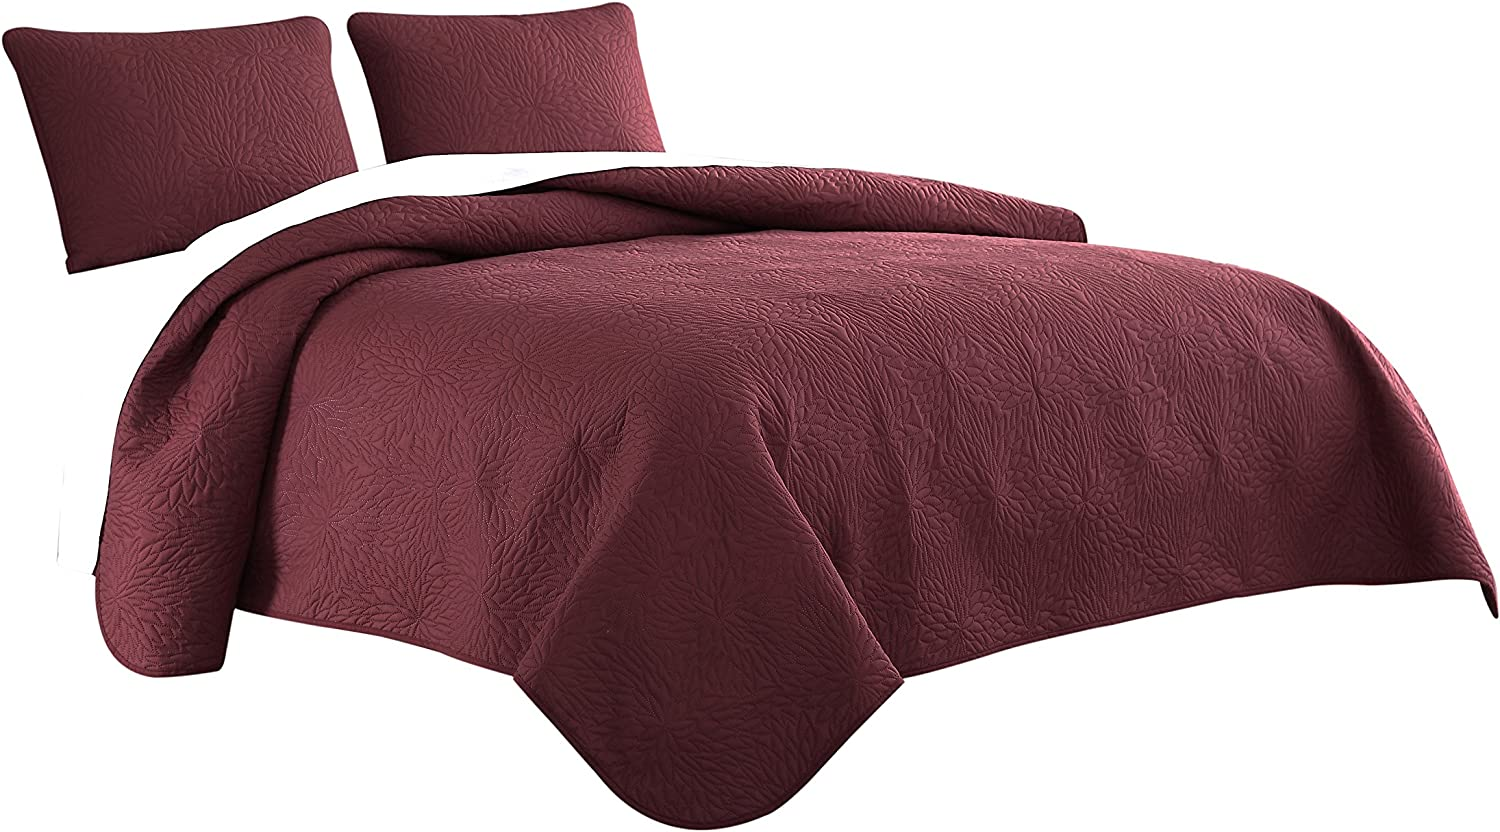 Cozy Beddings Aidee 3pc Coverlet Set King Cal-King Size Bed Lightweight Thermal Pressing Leafage   Burgundy